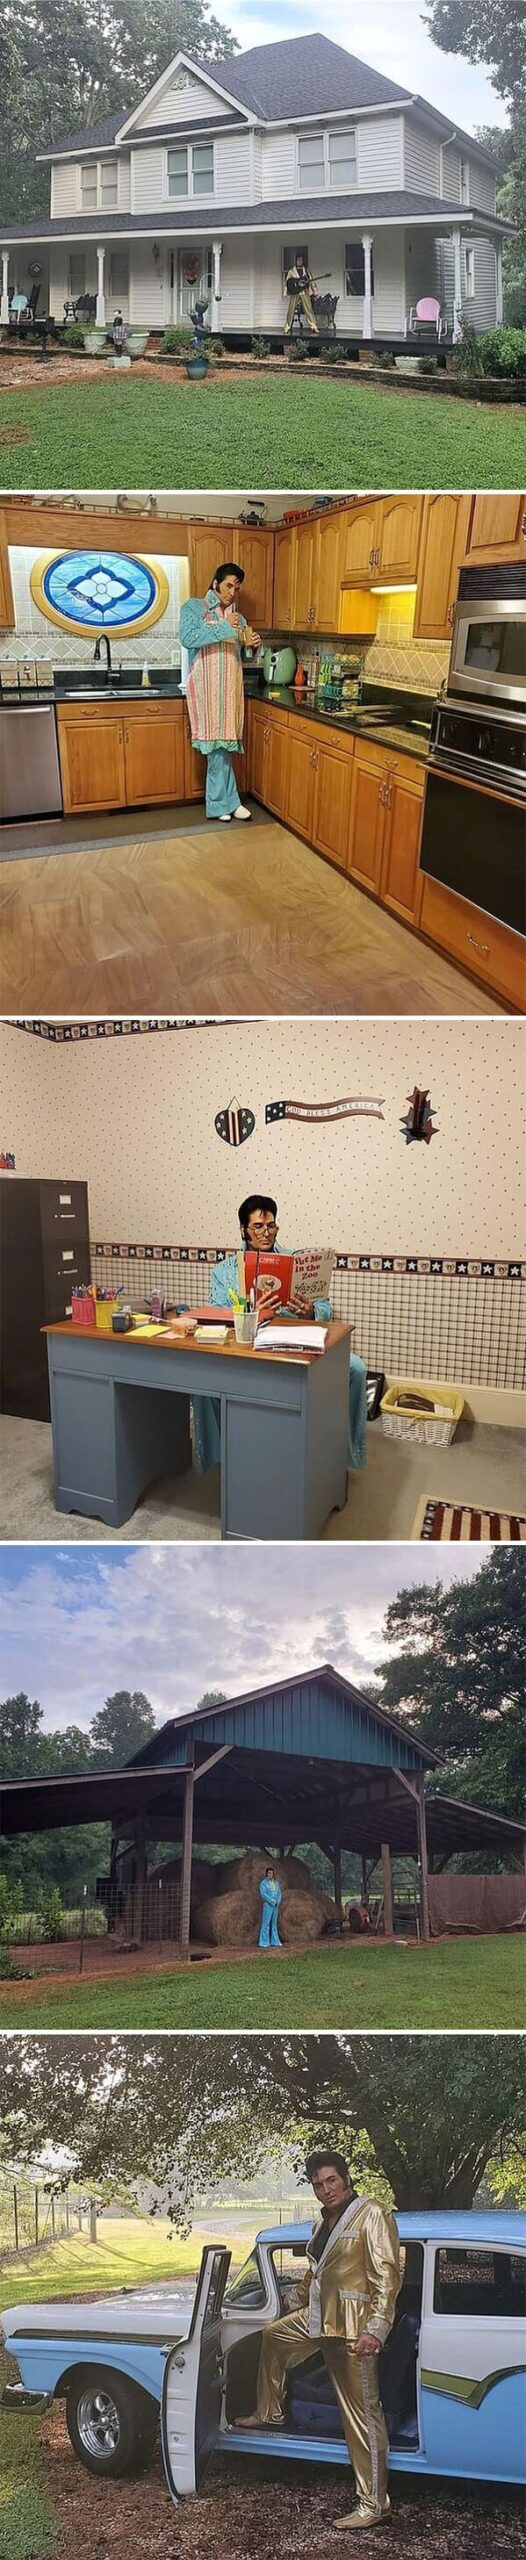 elvis in every photto, Zillow gone wild, weird and funny real estate listings, real estate agents who did extra, lol, funny pics of houses, ridiculous houses to buy, zillowgonewild, instagram, humor, funny pics